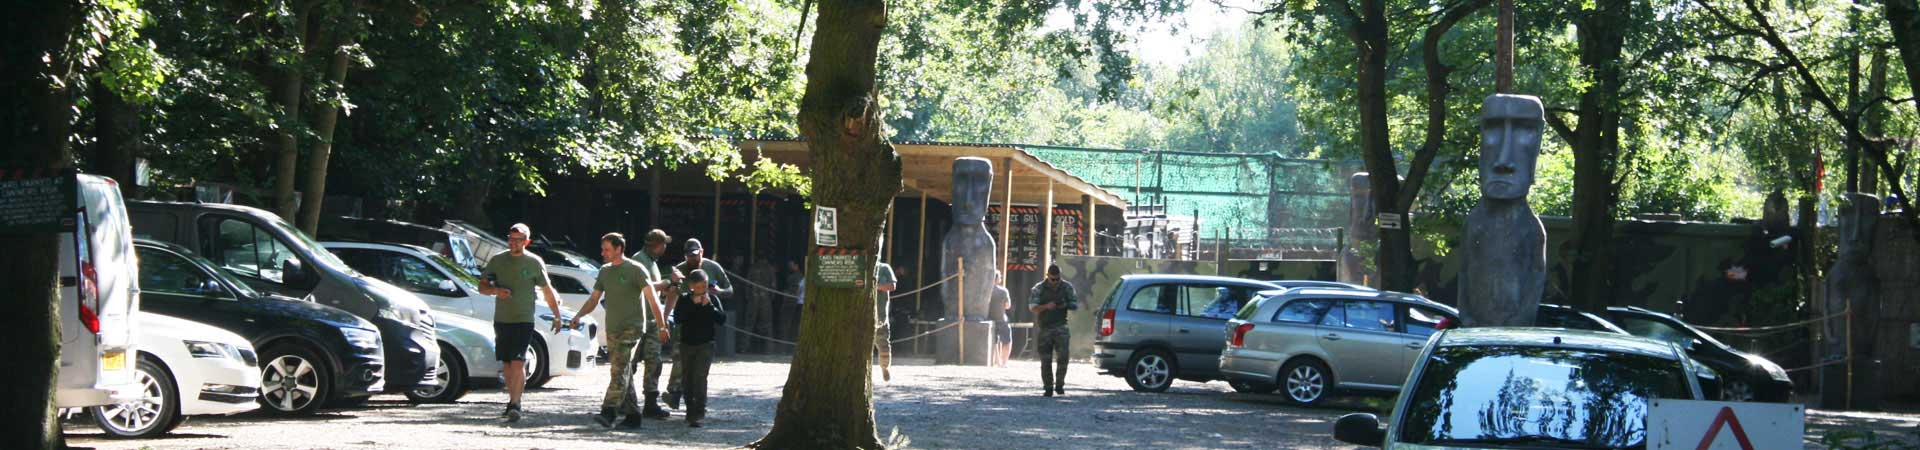 national paintball fields basecamp